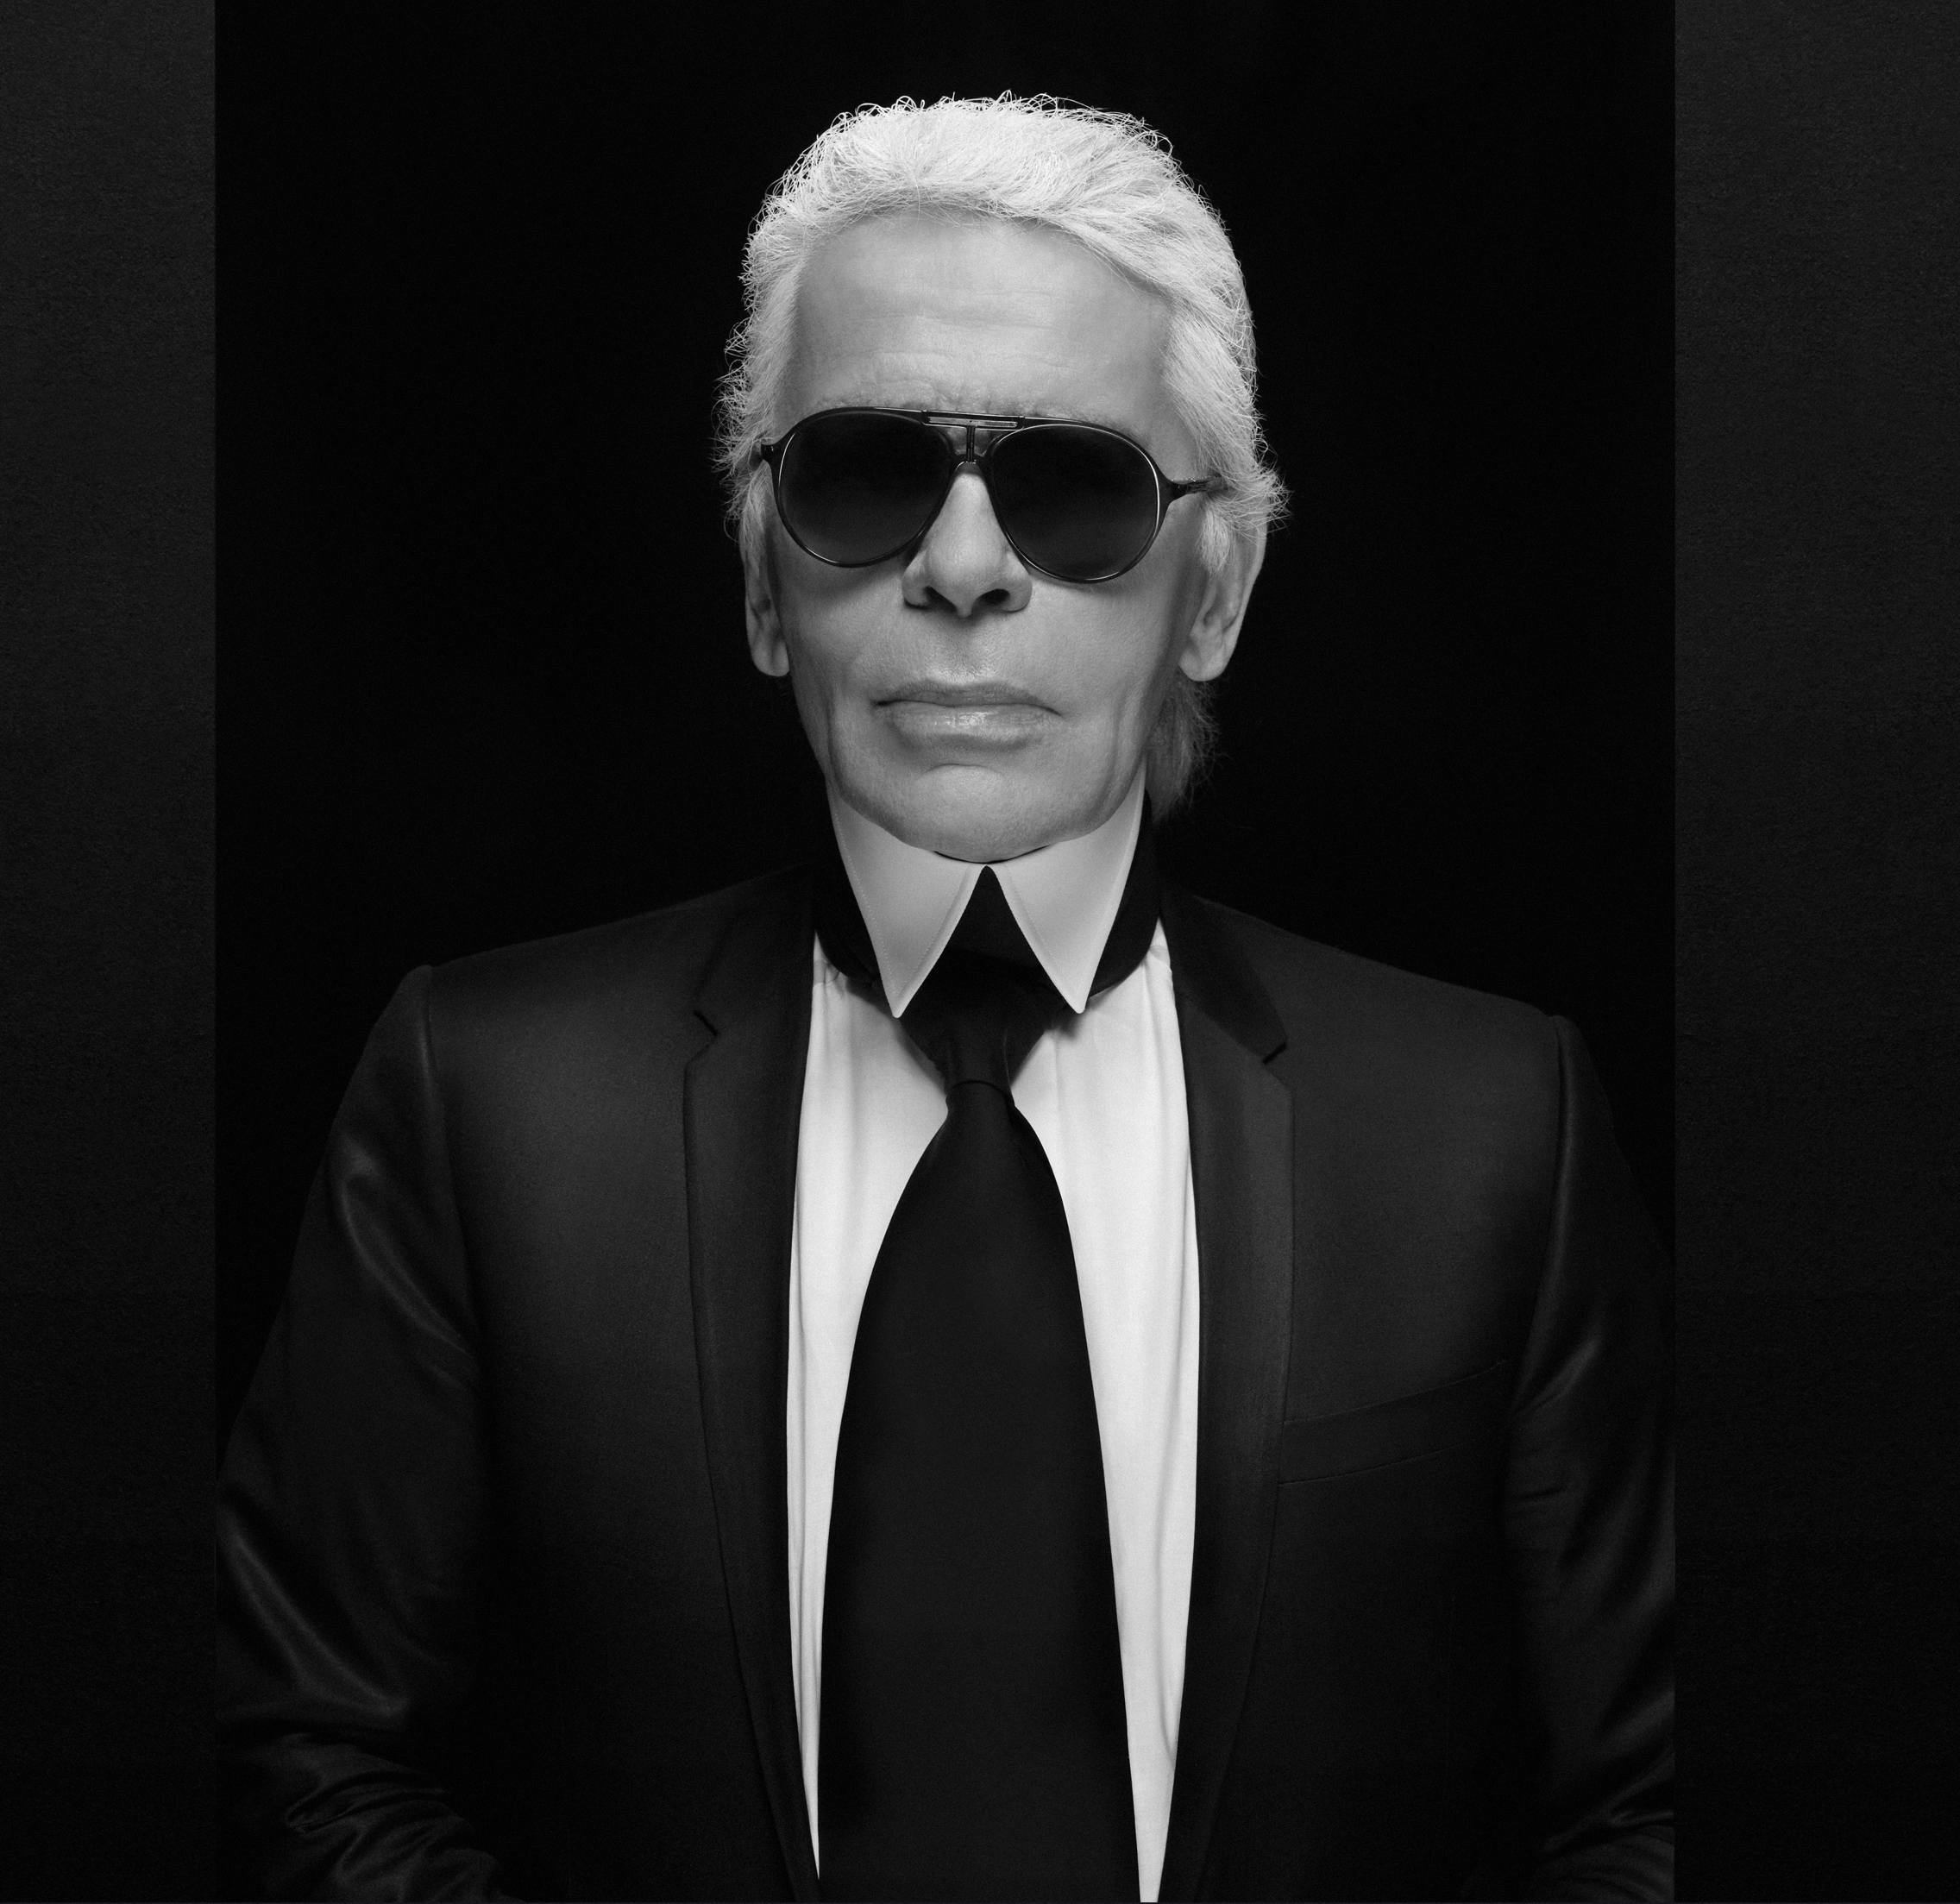 c5103861cb3f 24 Nov Karl Lagerfeld Announces Launch Of Global Hospitality Business